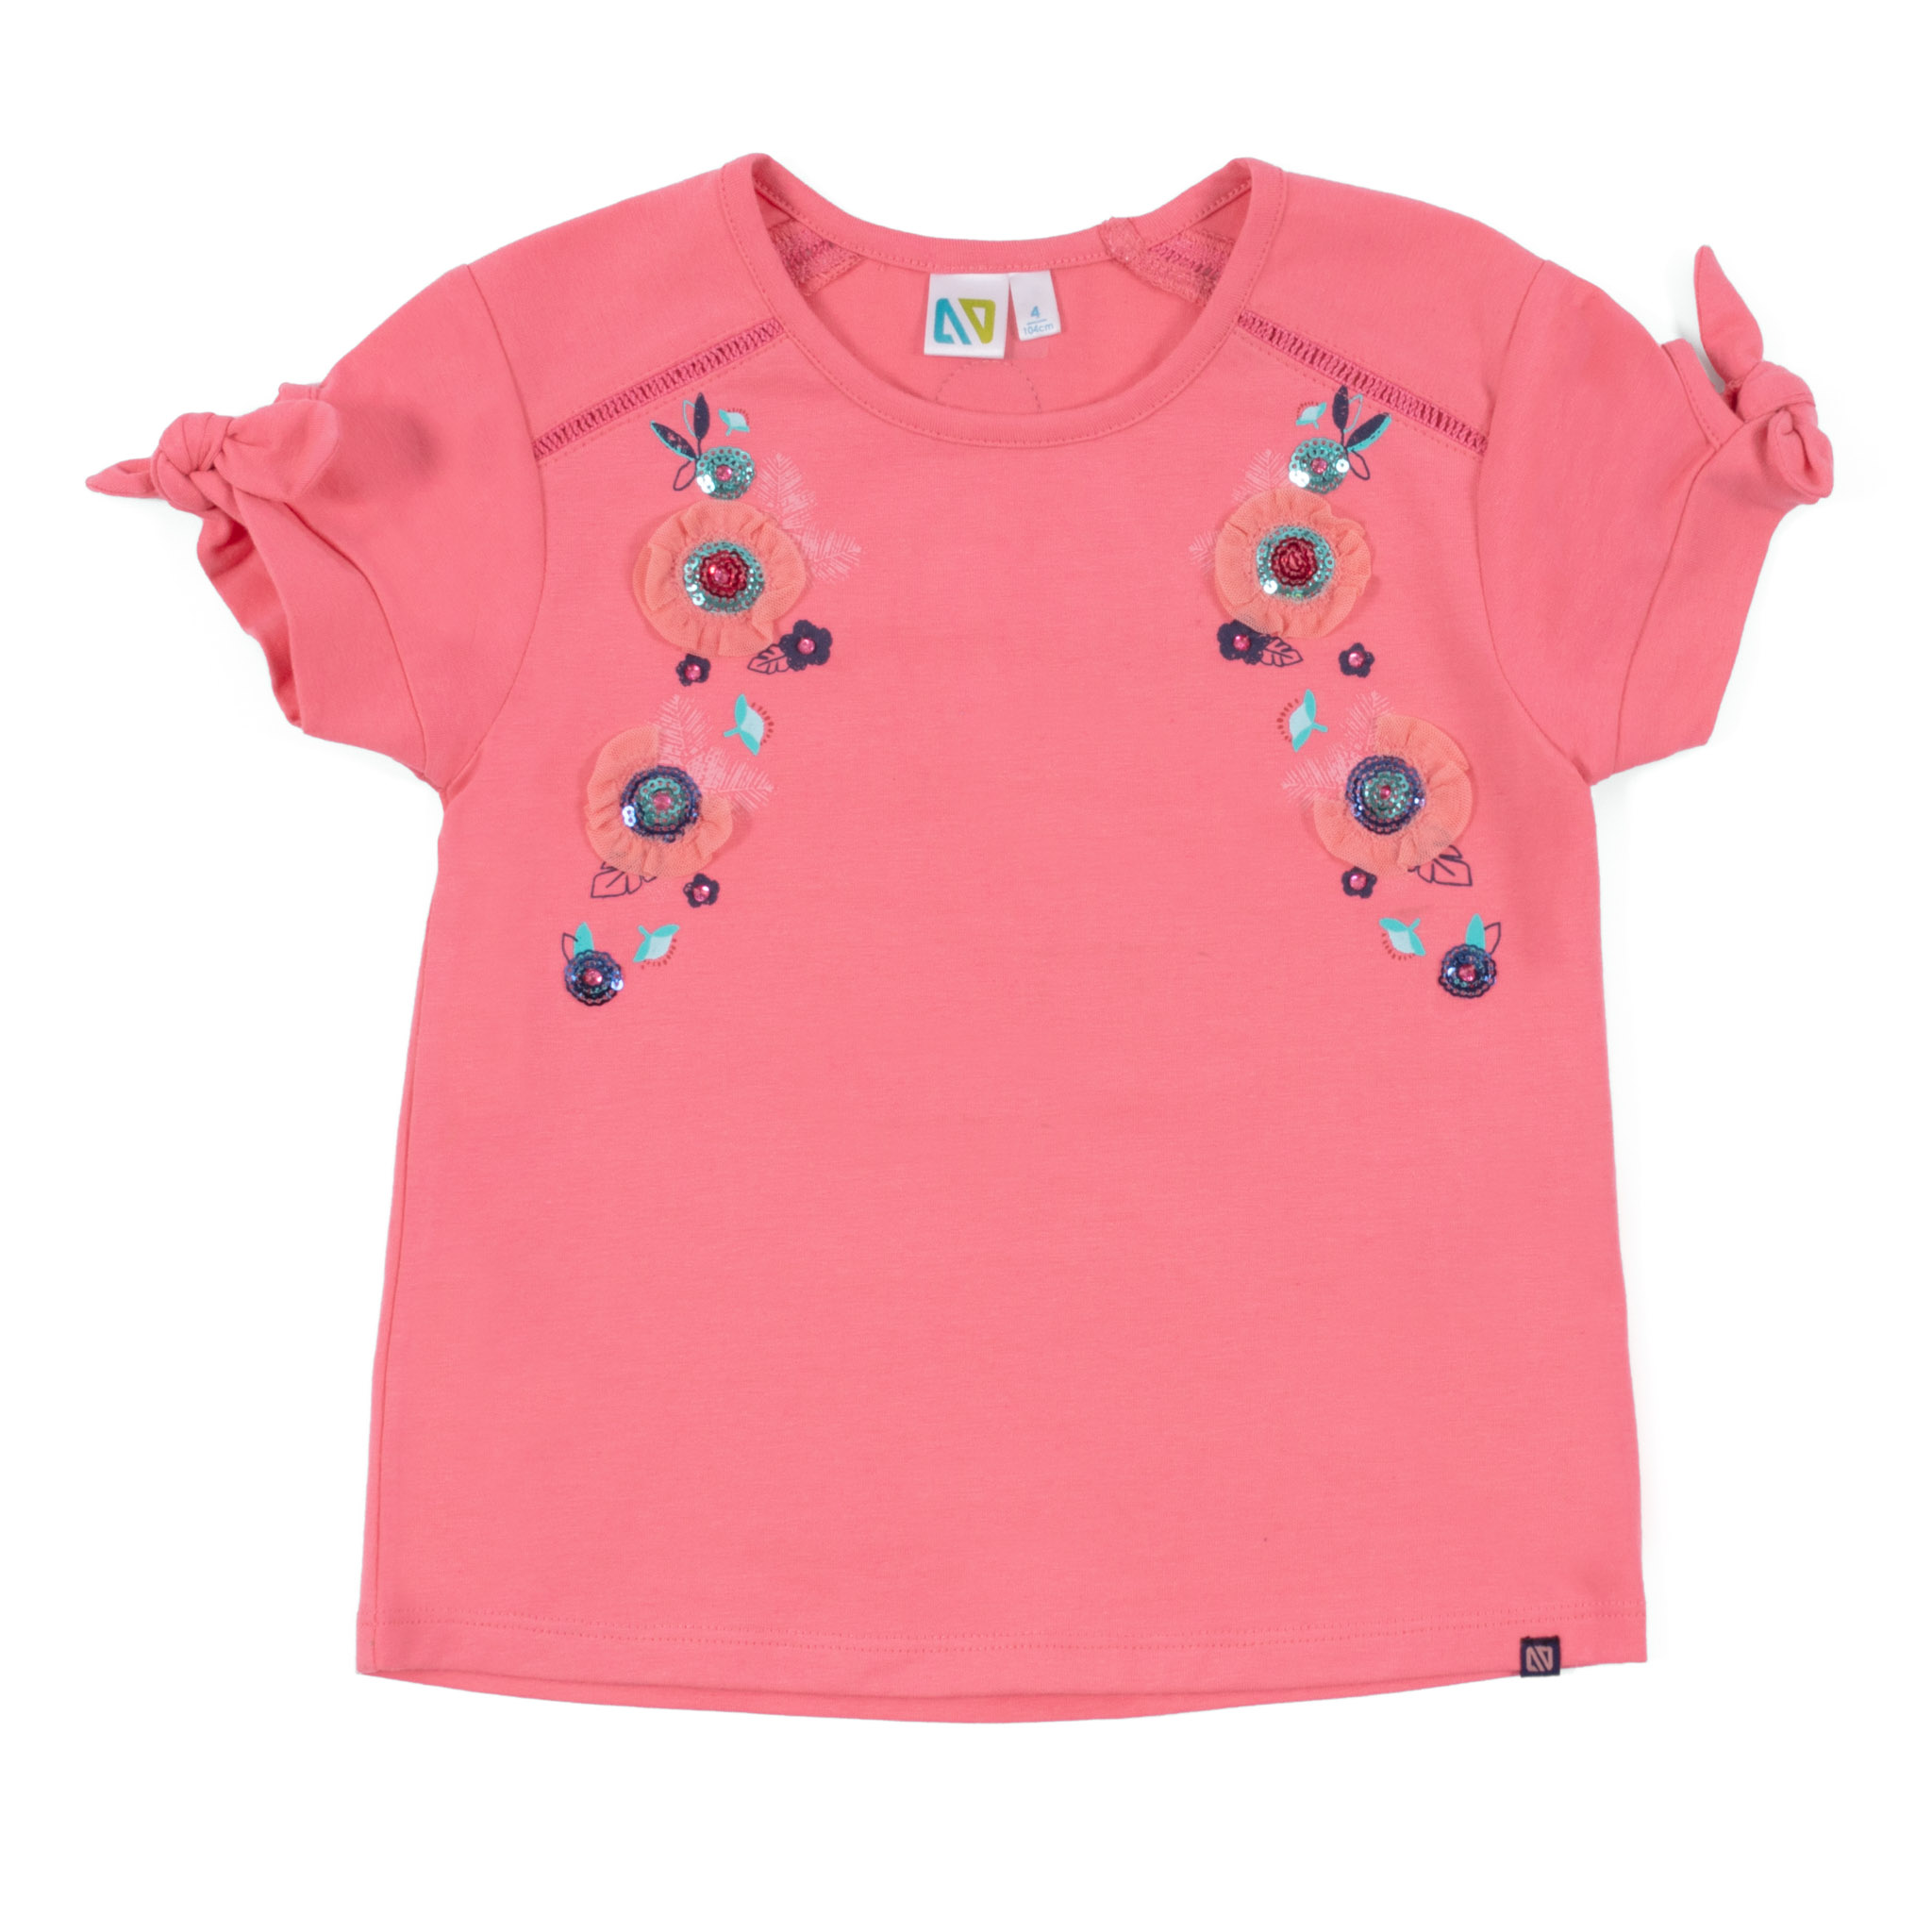 T-shirt - Coral - Girls